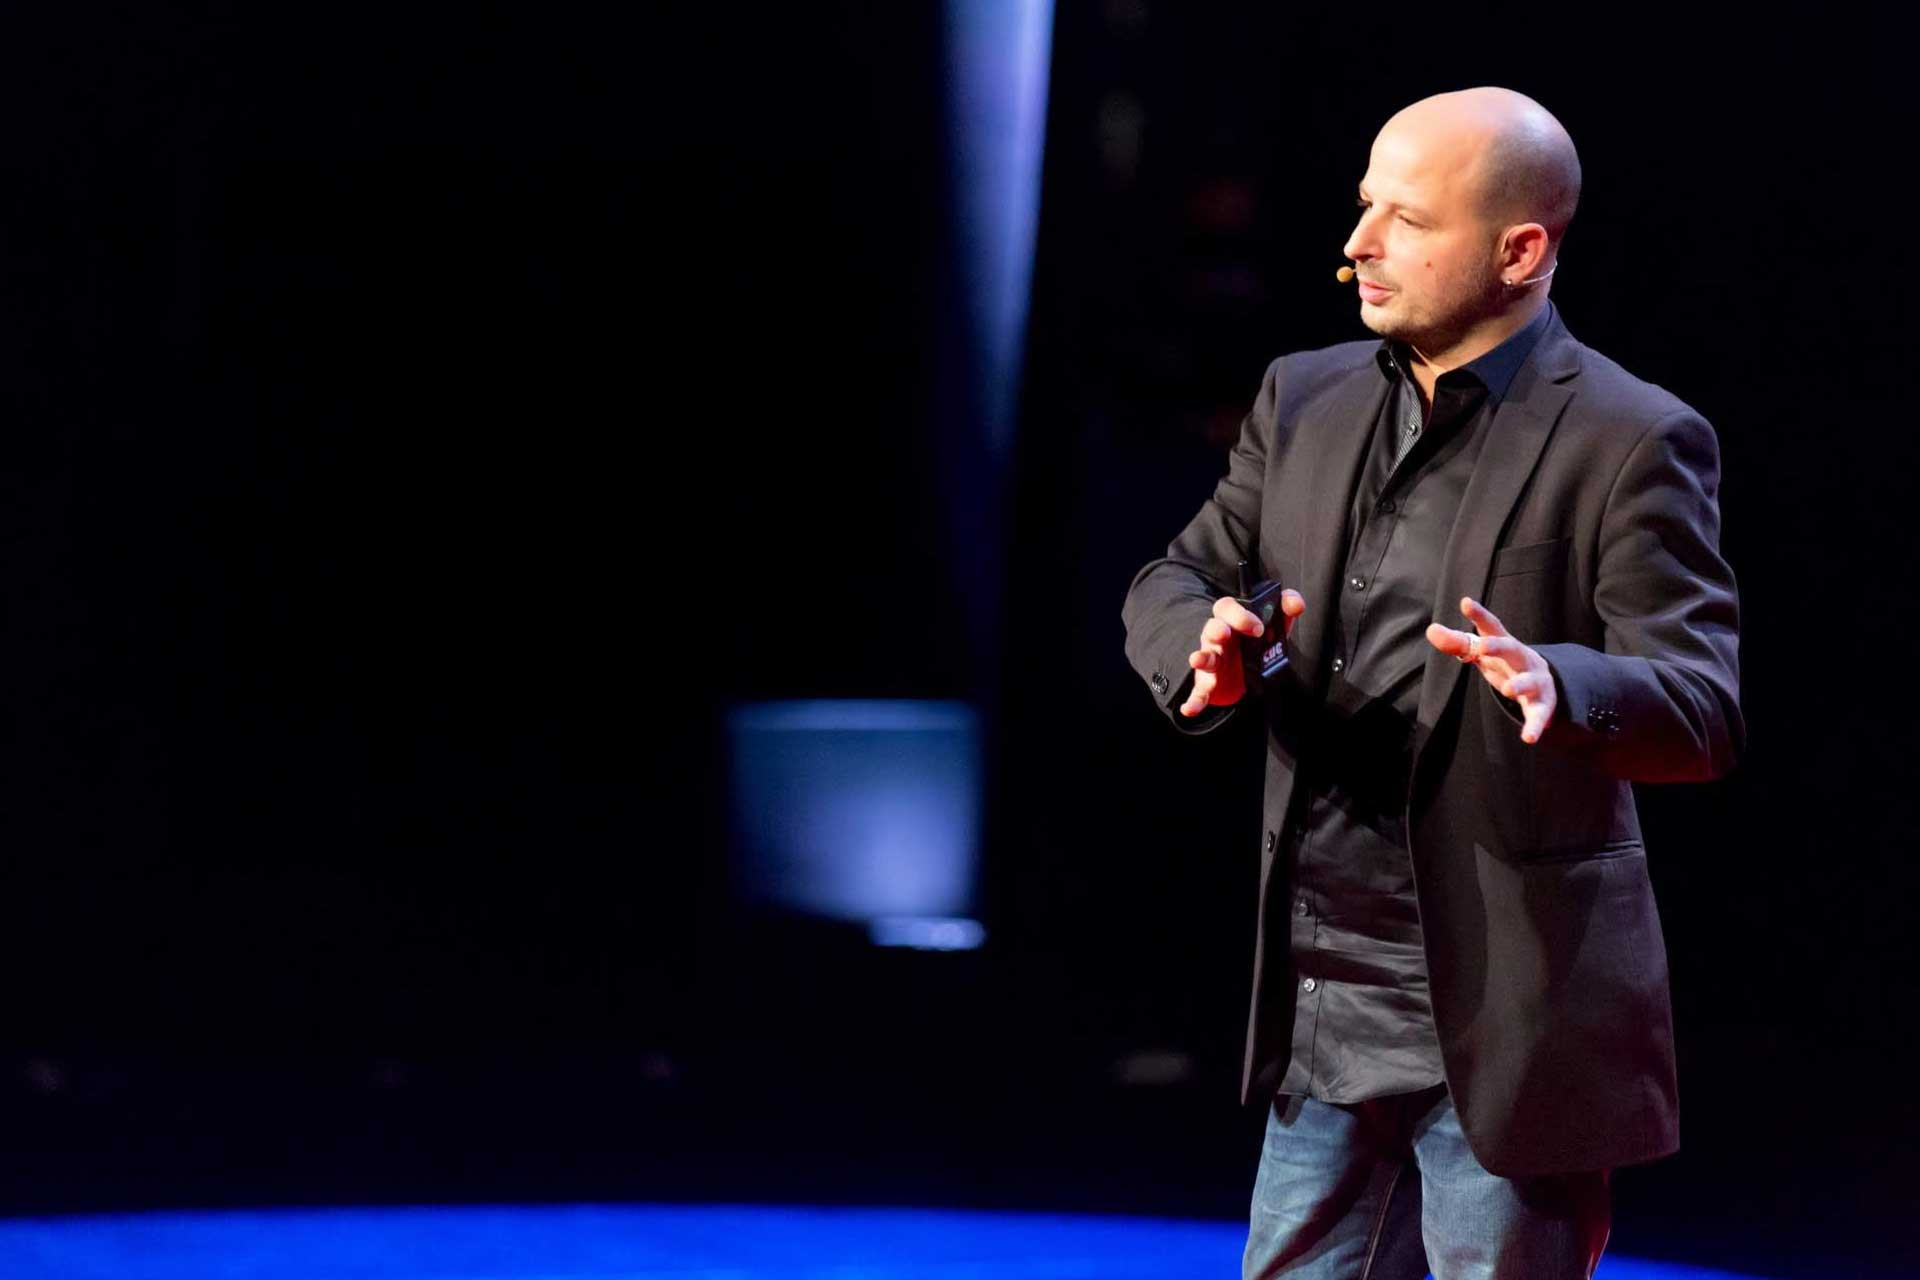 conference-TEDxParis-2015-14.jpg